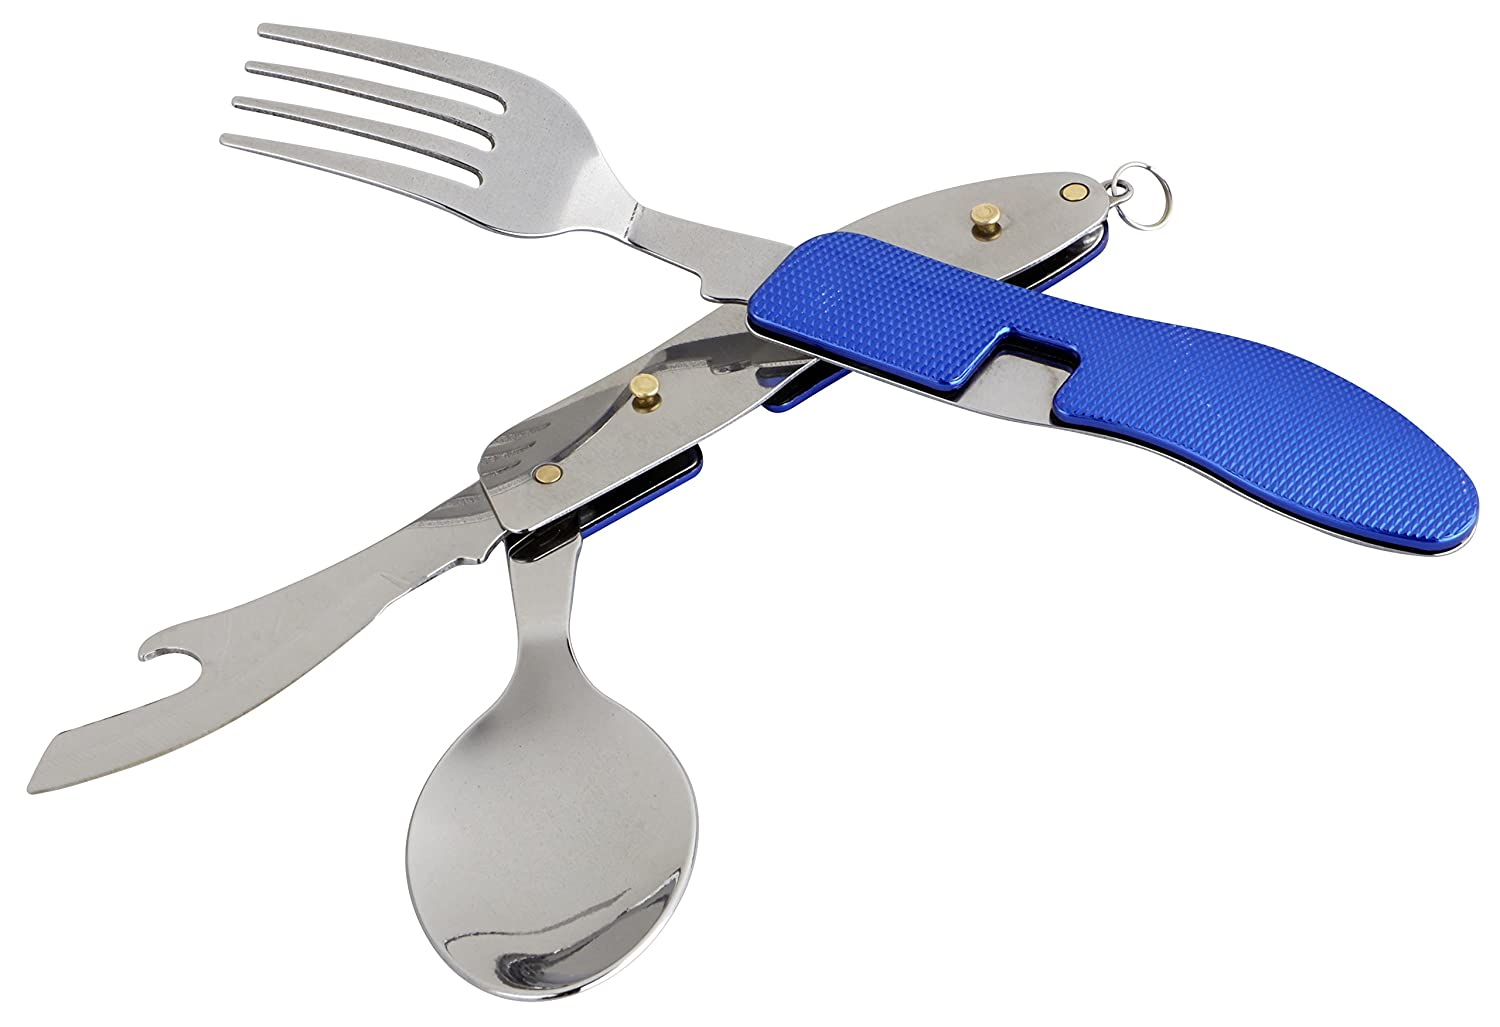 OUTDOOR FREAKZ Outdoor cutlery and camping cutlery foldable made of stainless steel (blue) P2-b+